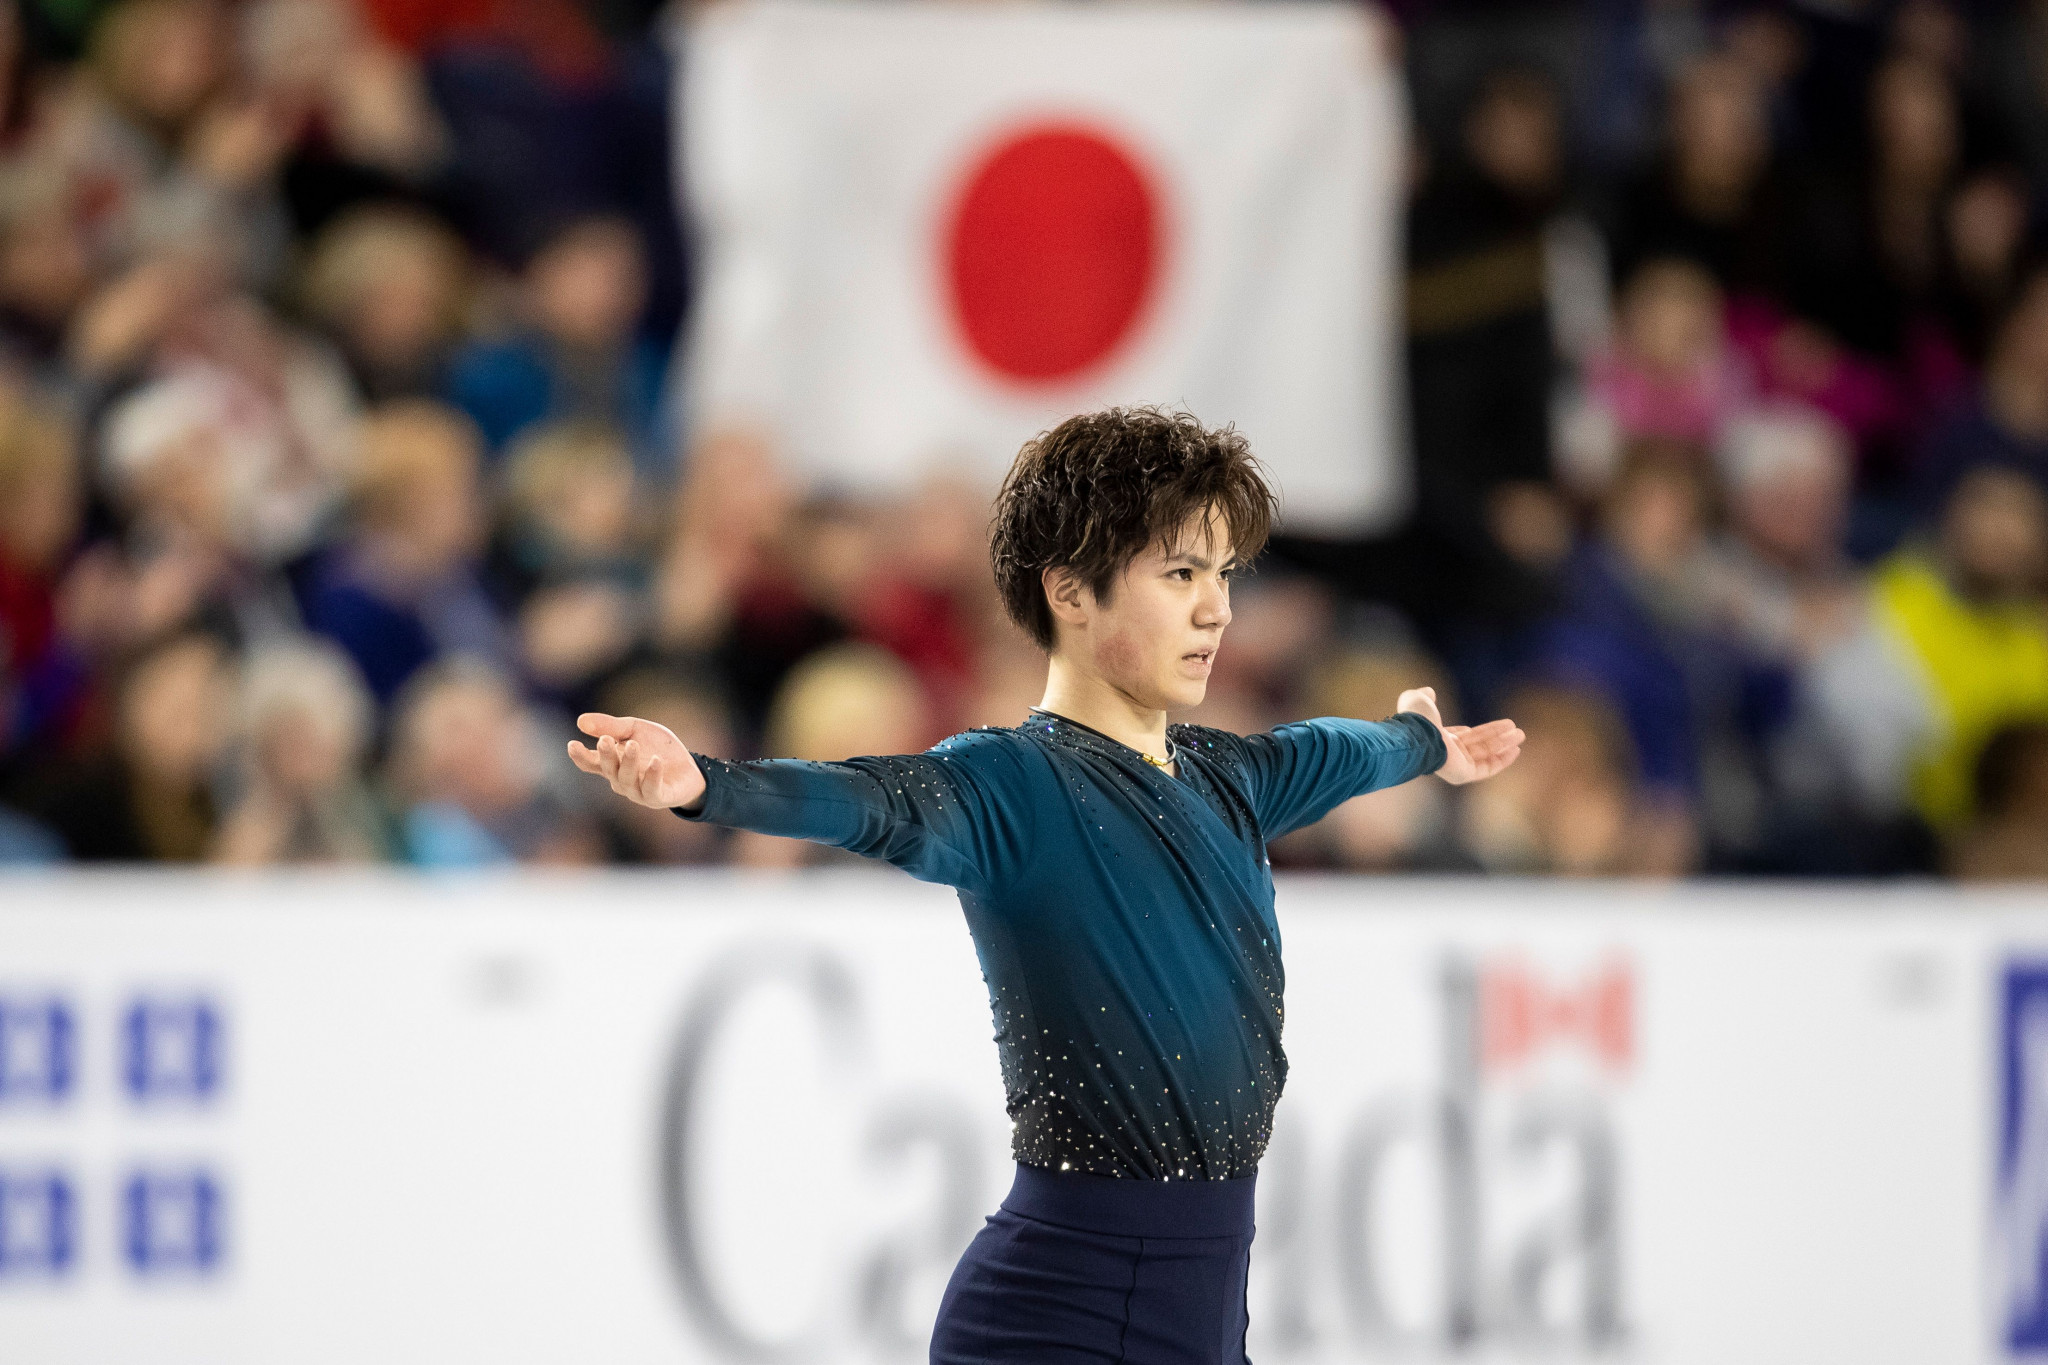 World and Olympic silver medallist Shoma Uno of Japan fought back in the free skating to take the men's gold medal at Skate Canada in Laval today ©Getty Images